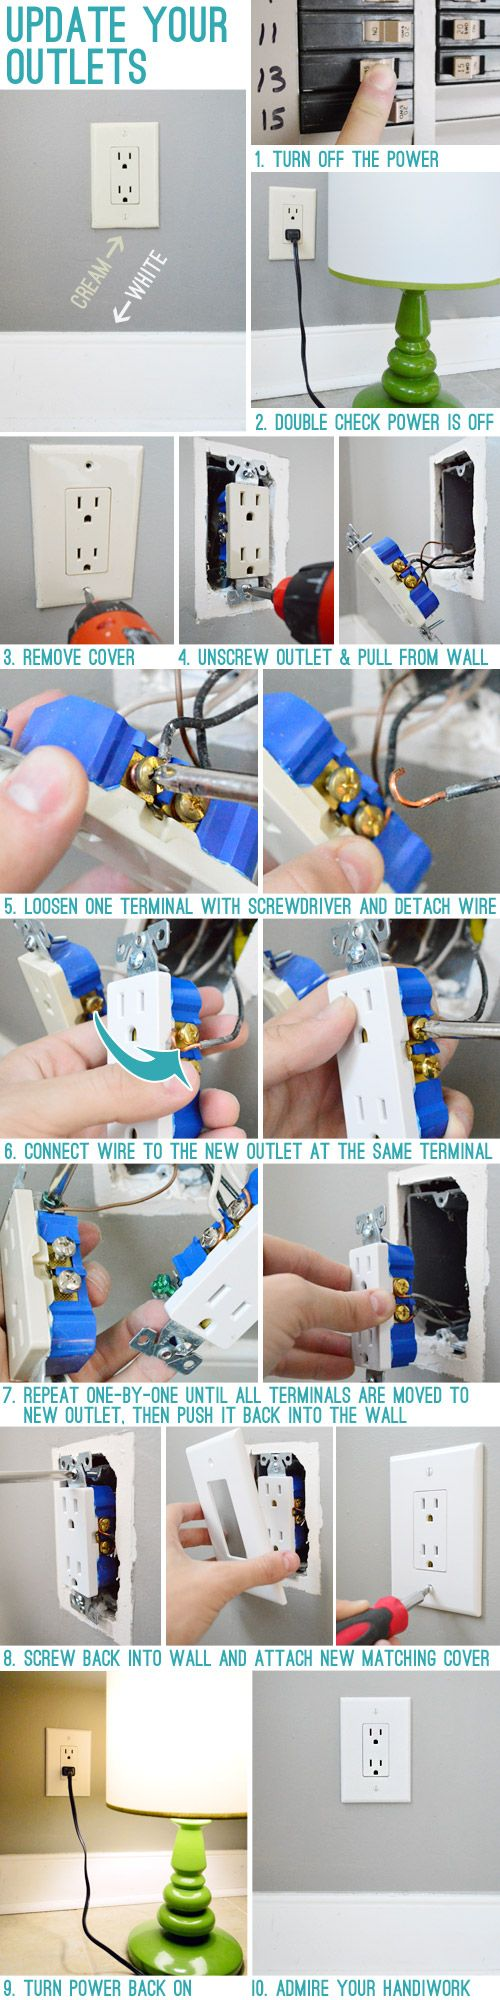 How To Update Your Outlets Step By Pics Dream Home House Wiring Switched Outlet Detailed Instructions On Replace Electrical And With White Ones